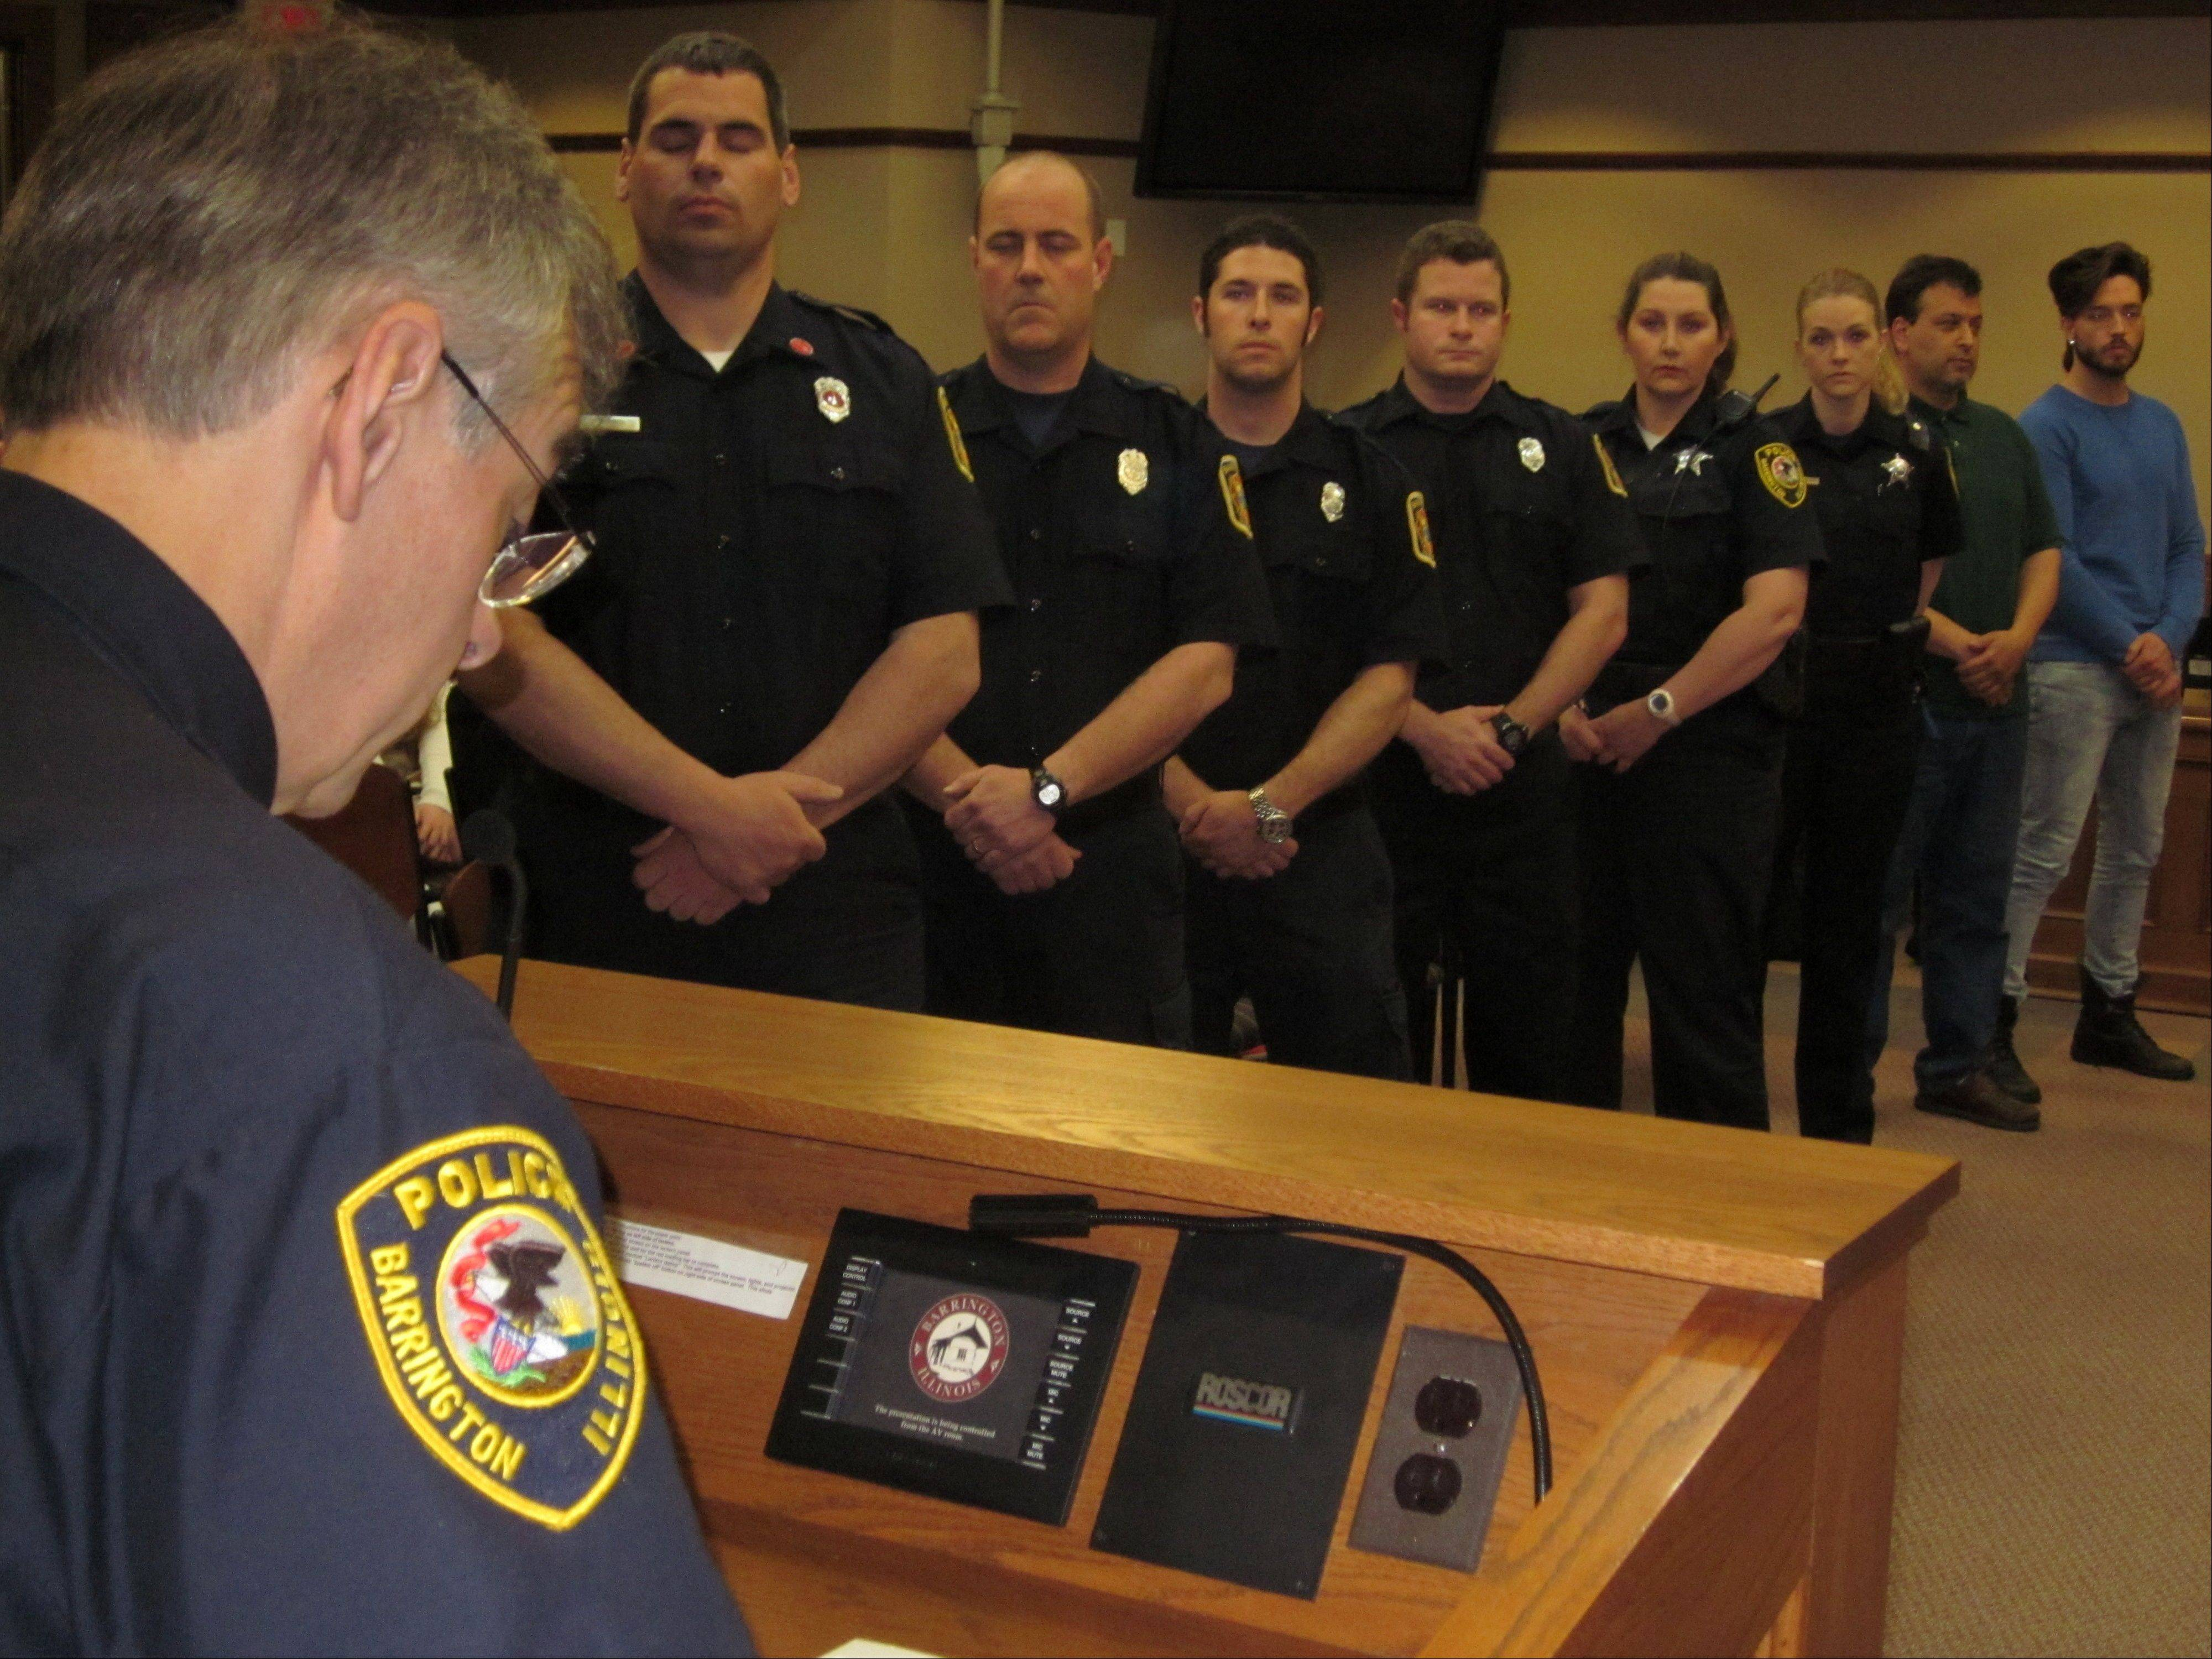 Barrington Police Chief Jerry Libit, left, reads a proclamation honoring the police officers, paramedics and good Samaritans who helped save the life of 11-year-old Dominic Szymanski after the boy was struck by a train March 15, while most of the honorees look on.